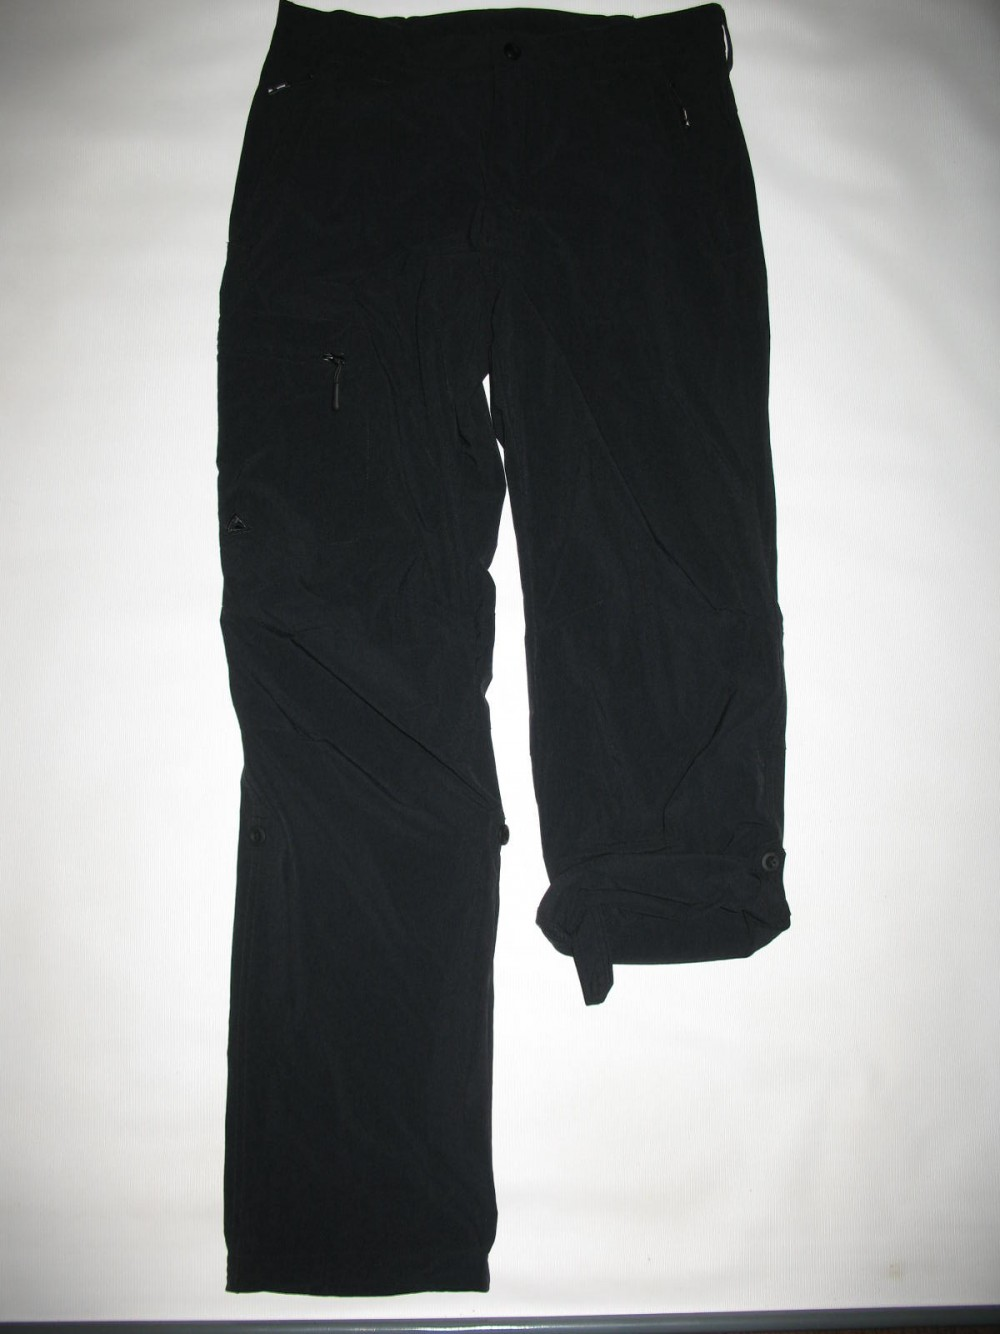 Штаны HICKORY outdoor pants (размер L) - 1